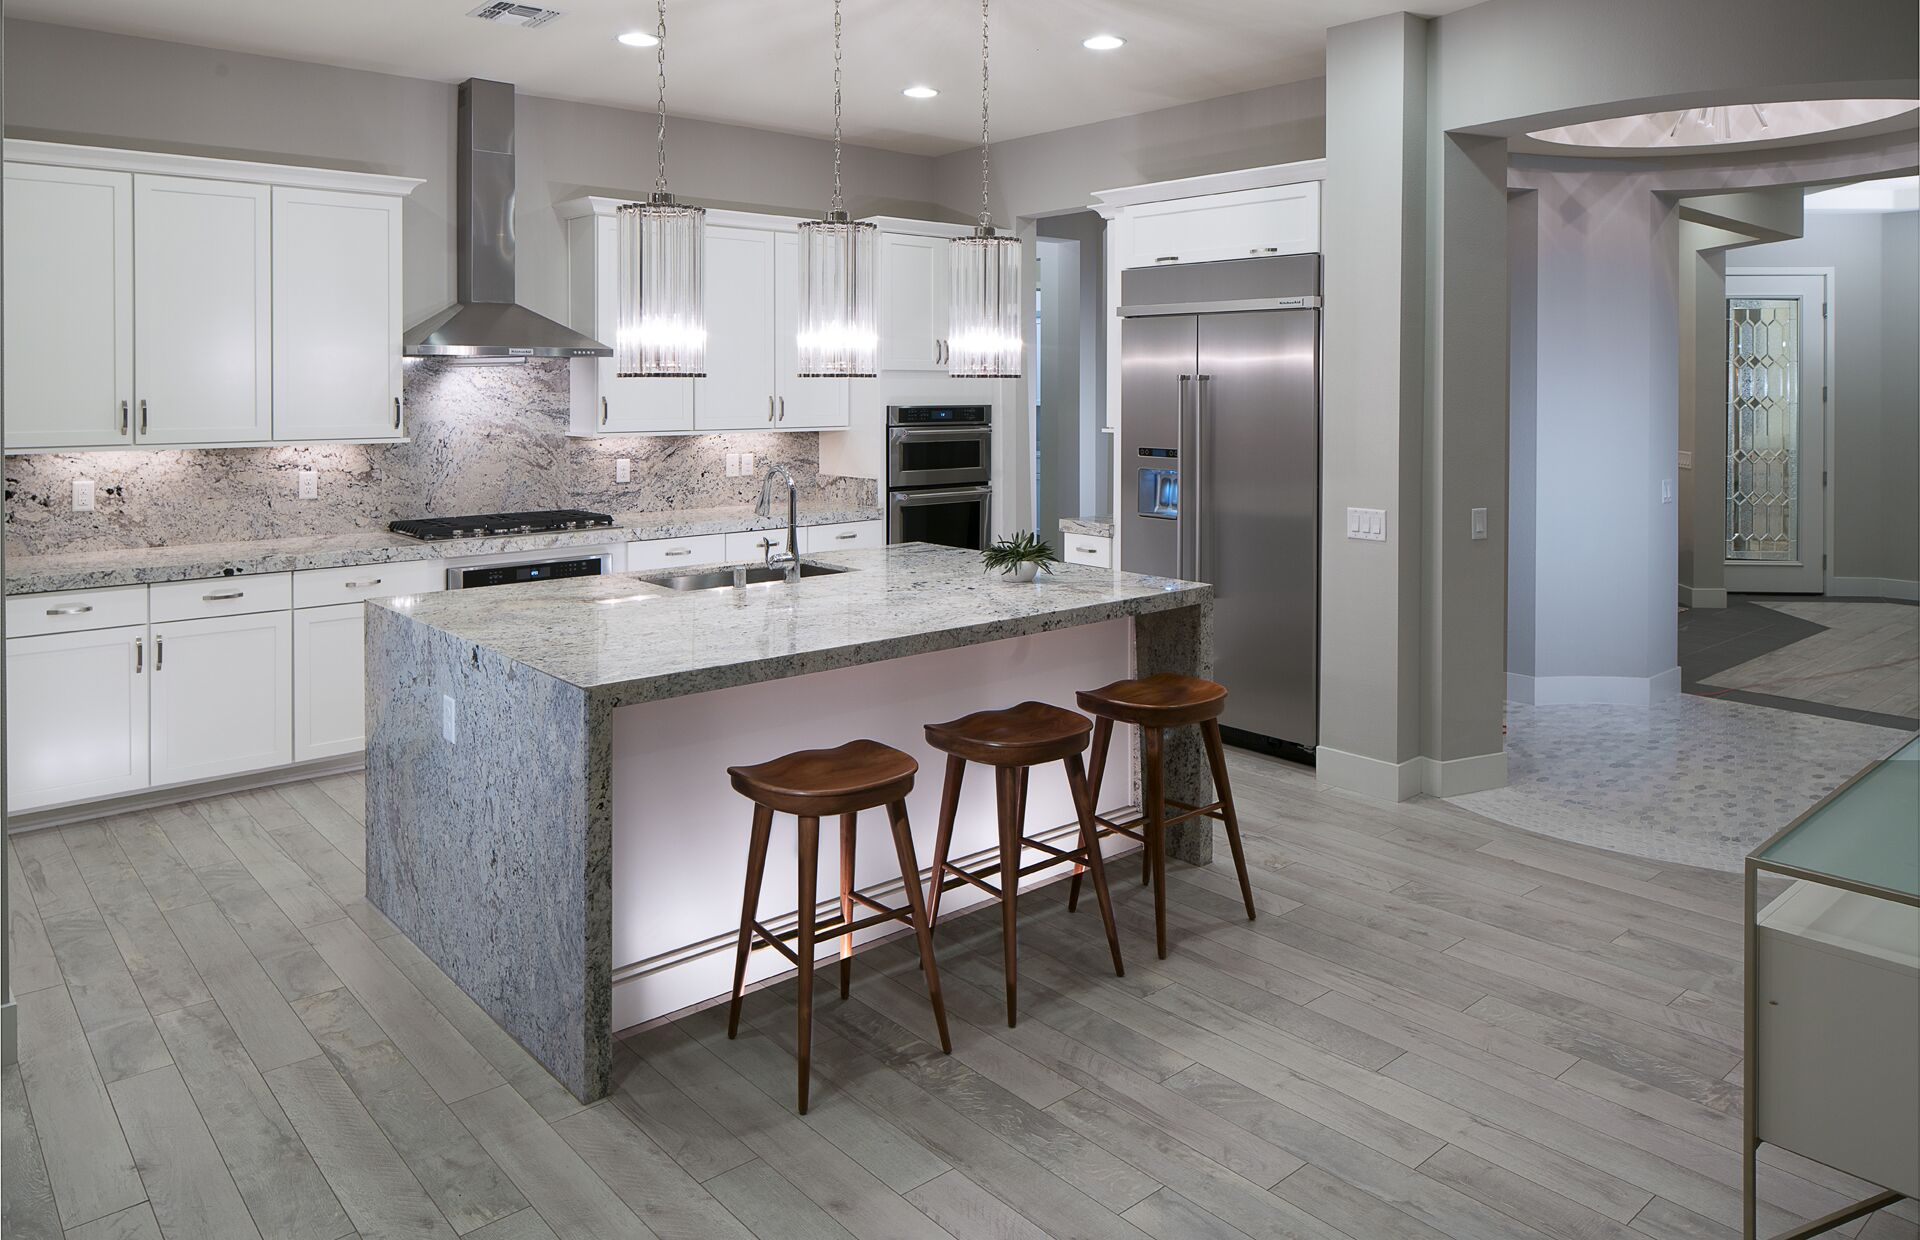 5 Kitchen Design Trends to Take From Model Homes   Lawson ...